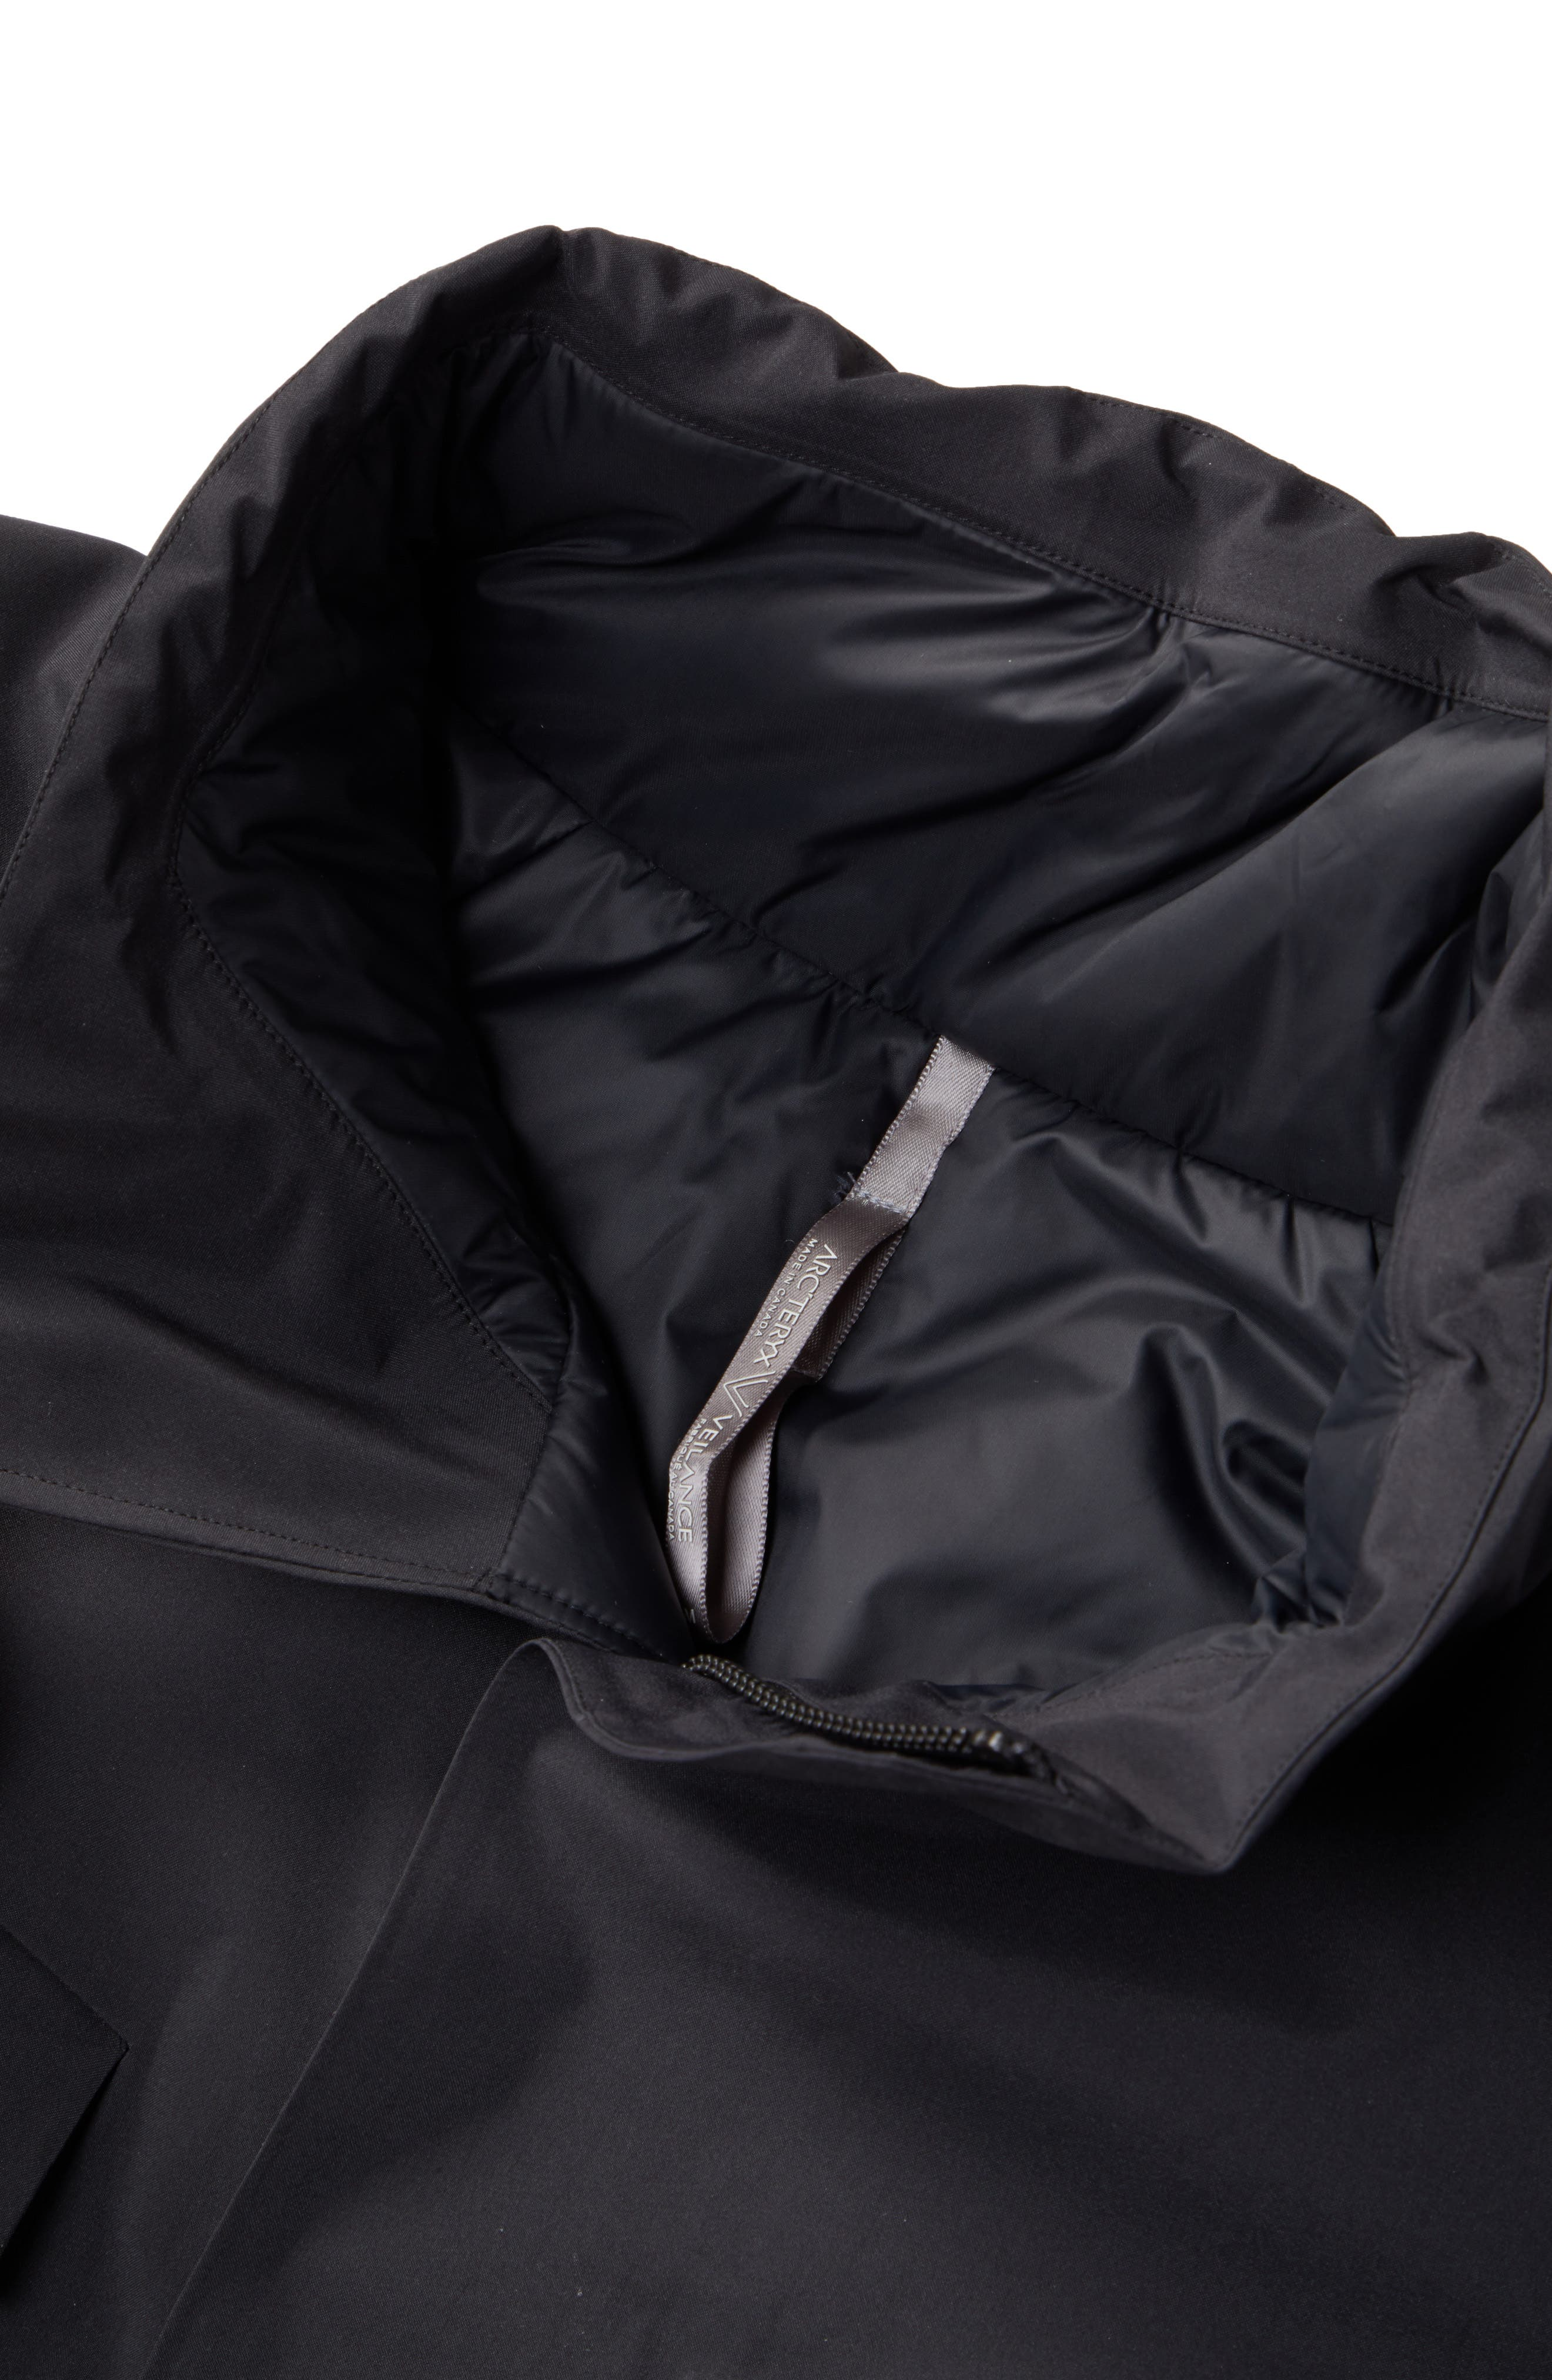 Gore-Tex<sup>®</sup> Pro Waterproof/Windproof Insulated Field Jacket,                             Alternate thumbnail 5, color,                             BLACK